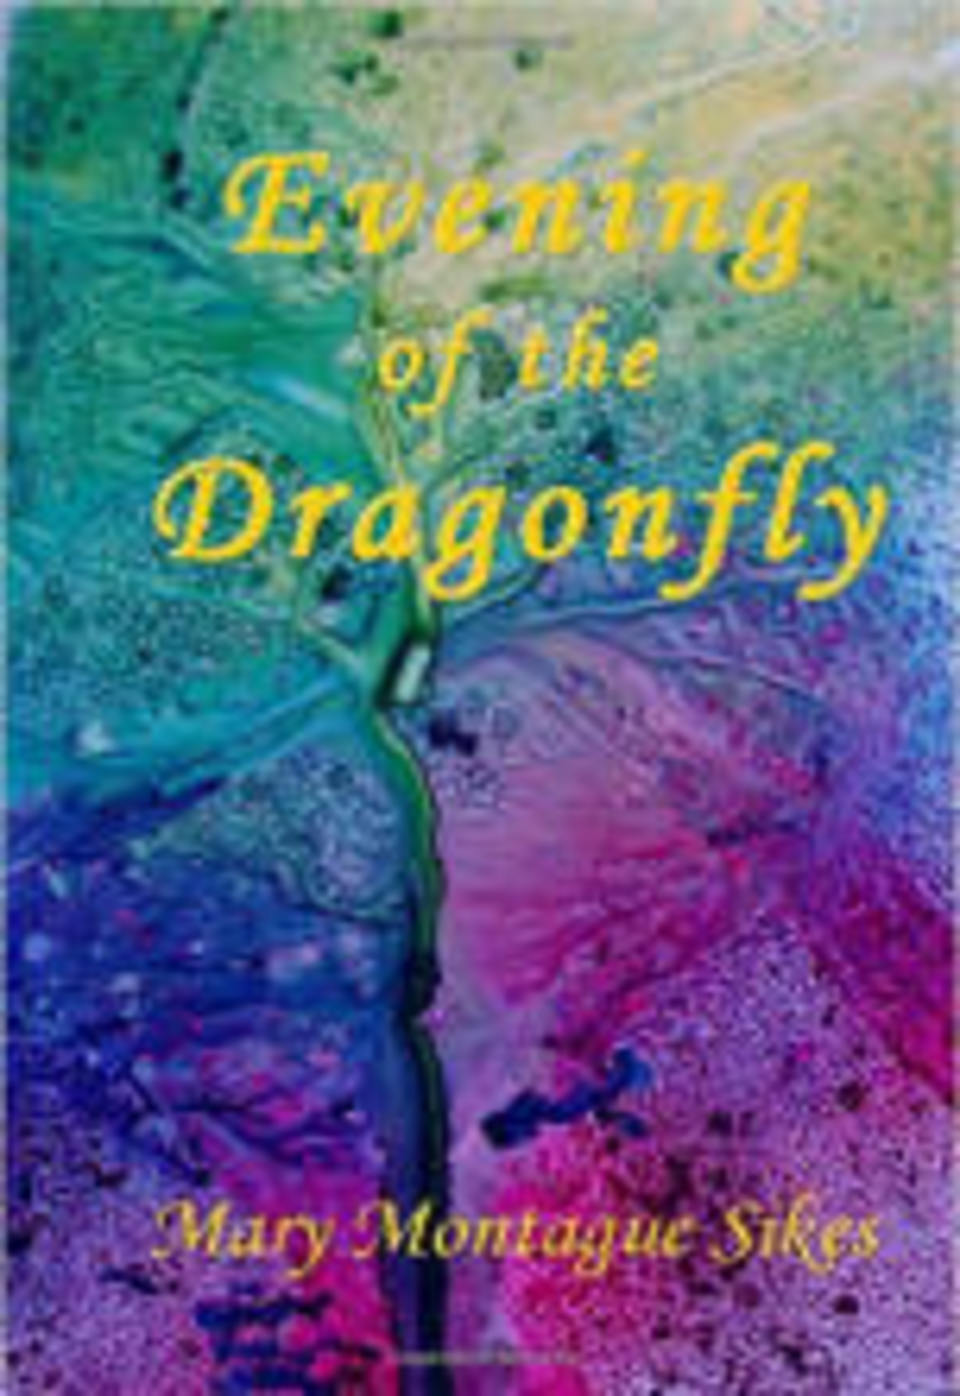 Eveningdragonflybook20160201 11317 do2nbc